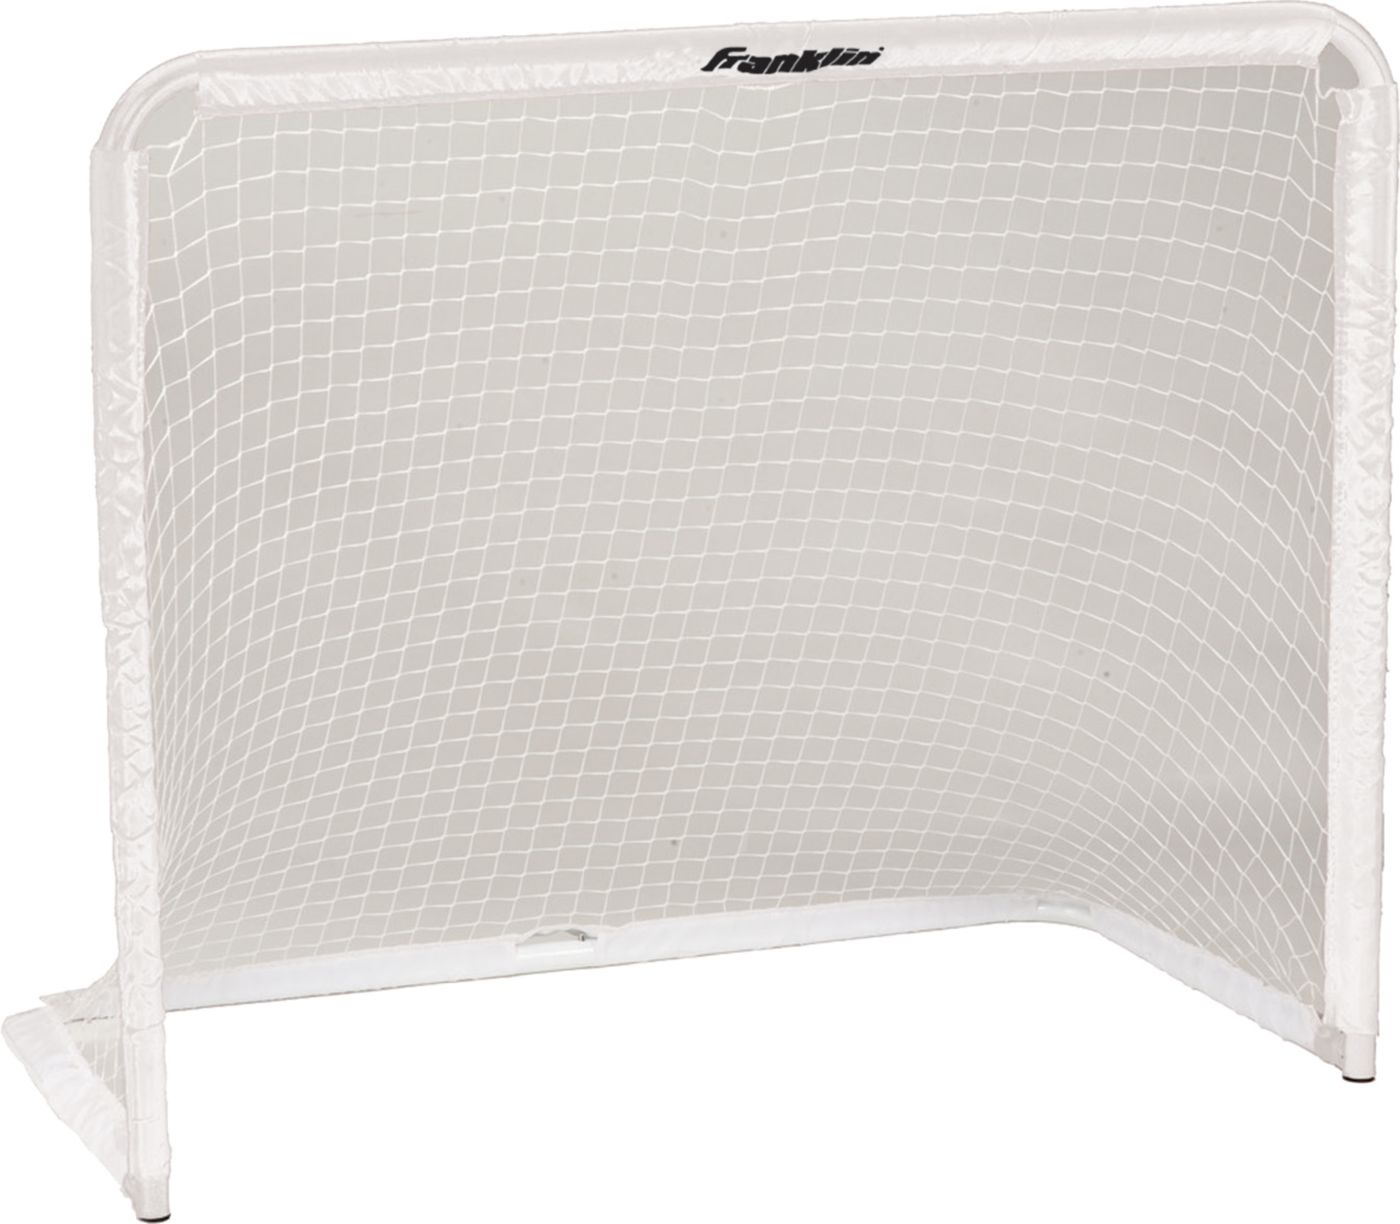 "Franklin 50"" All-Purpose Steel Goal"